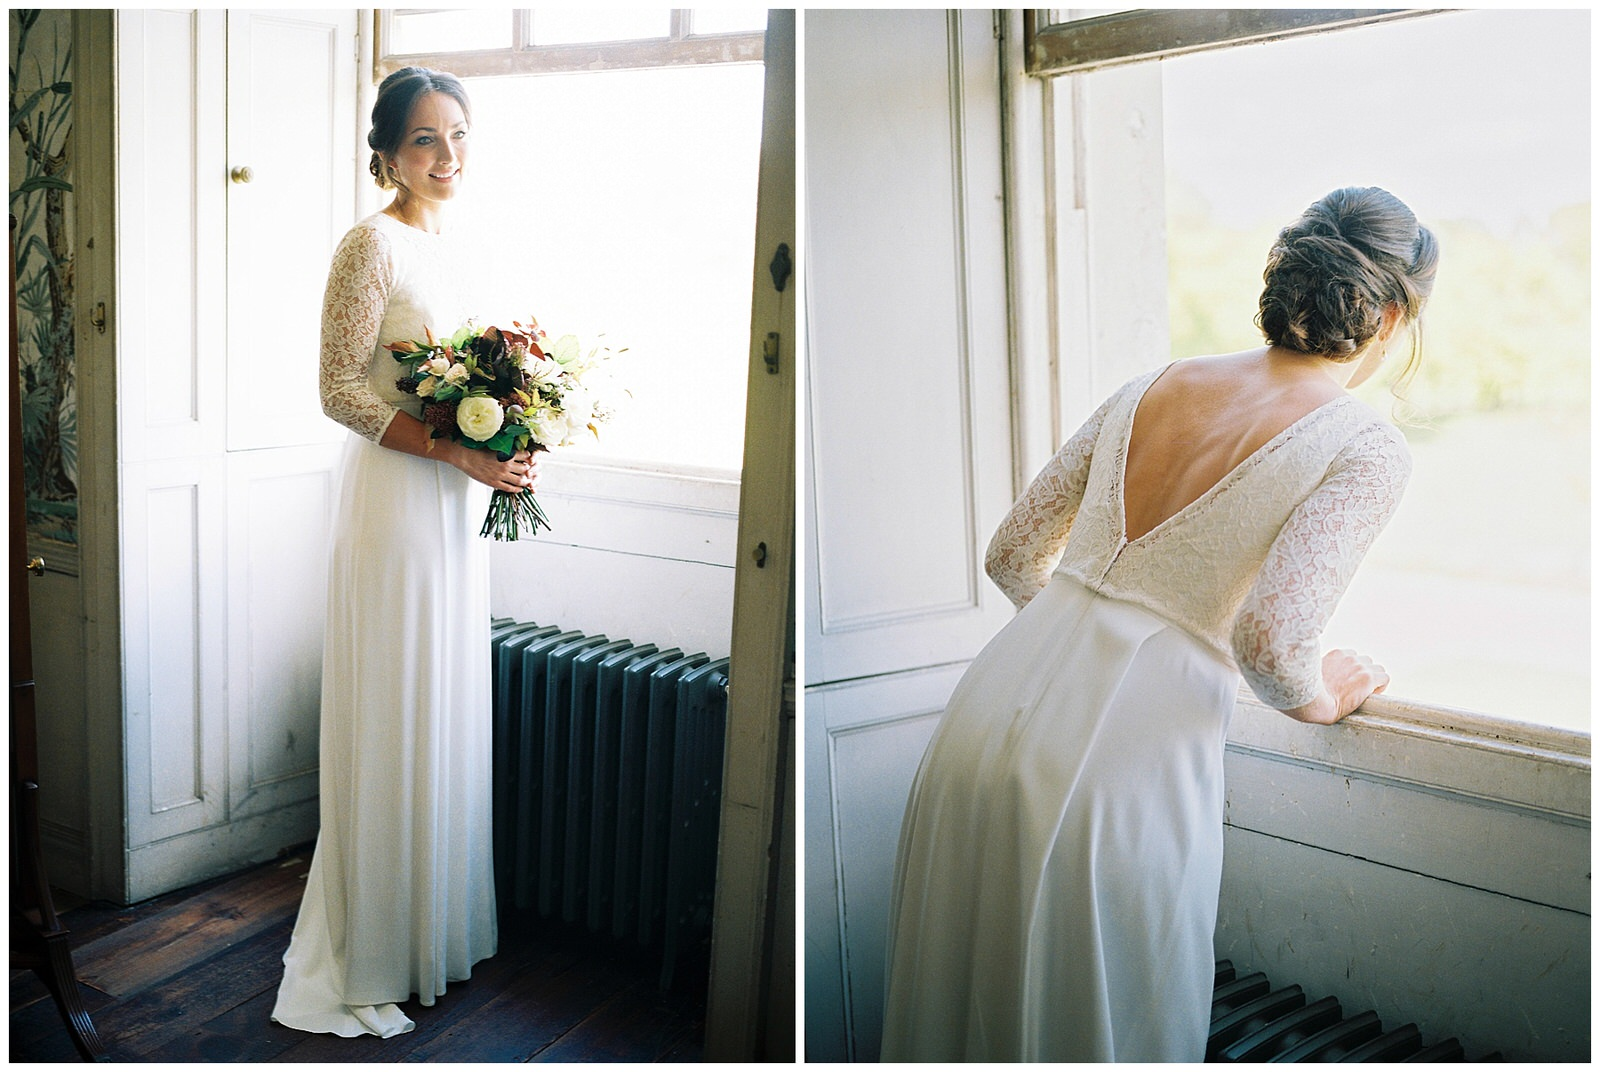 BRIDE WATCHING HER GUESTS ARRIVE THROUGH WINDOW AT ST GILES HOUSE